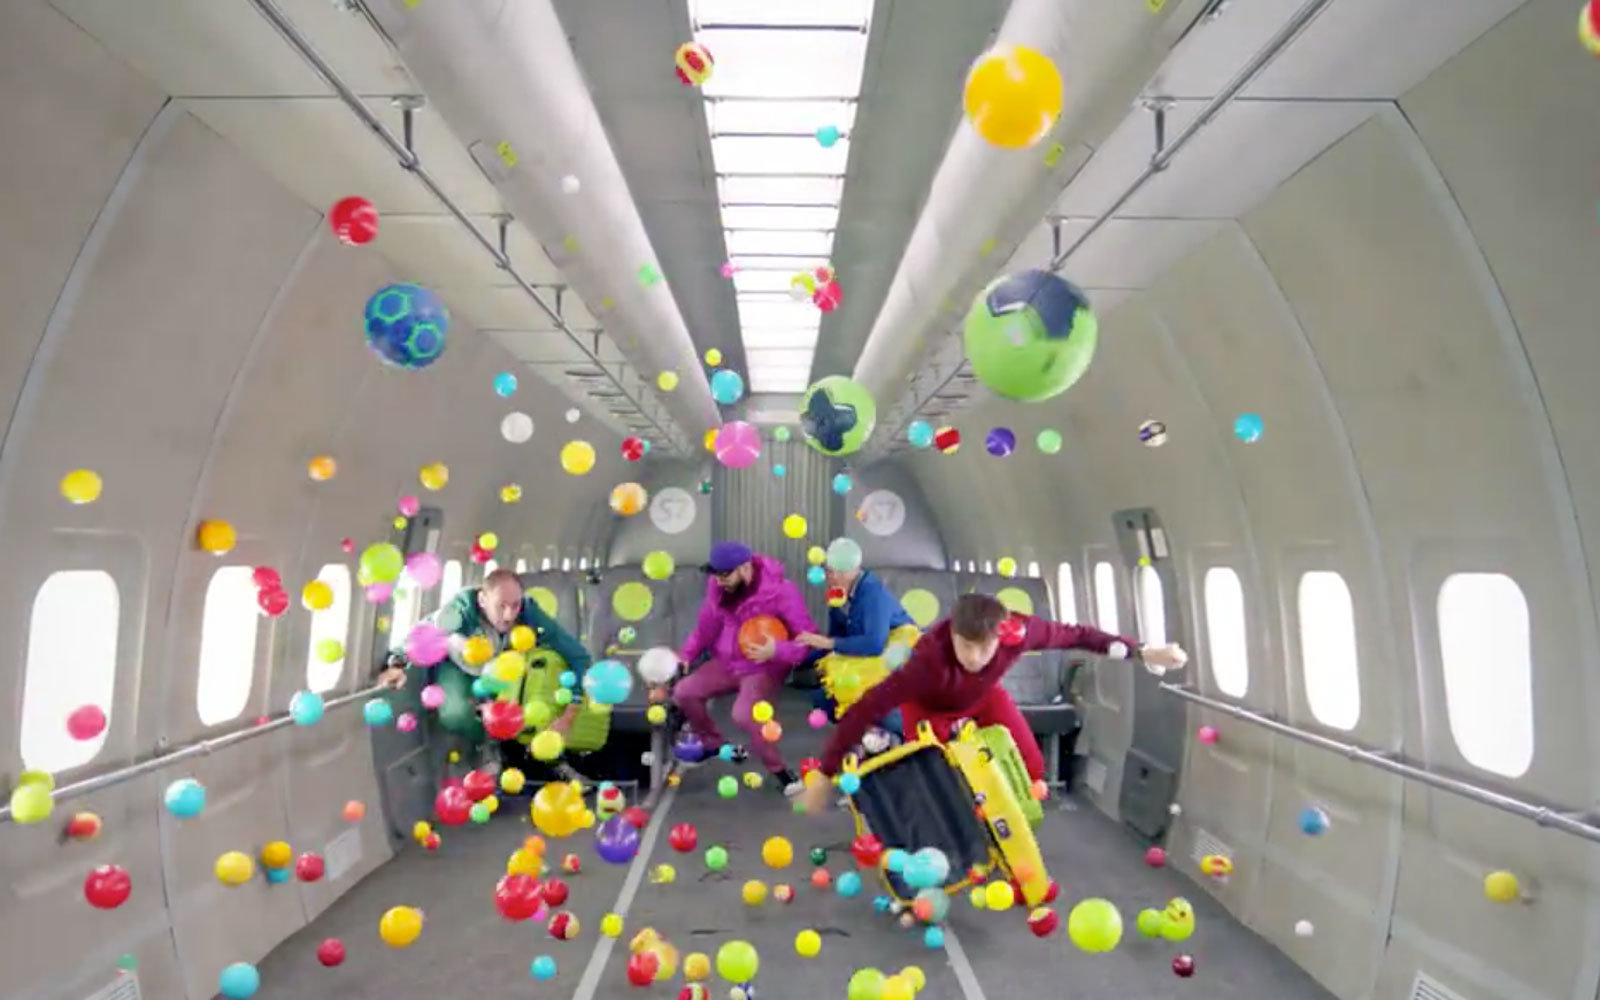 OK Gos New Music Video Features A Zero Gravity Airplane